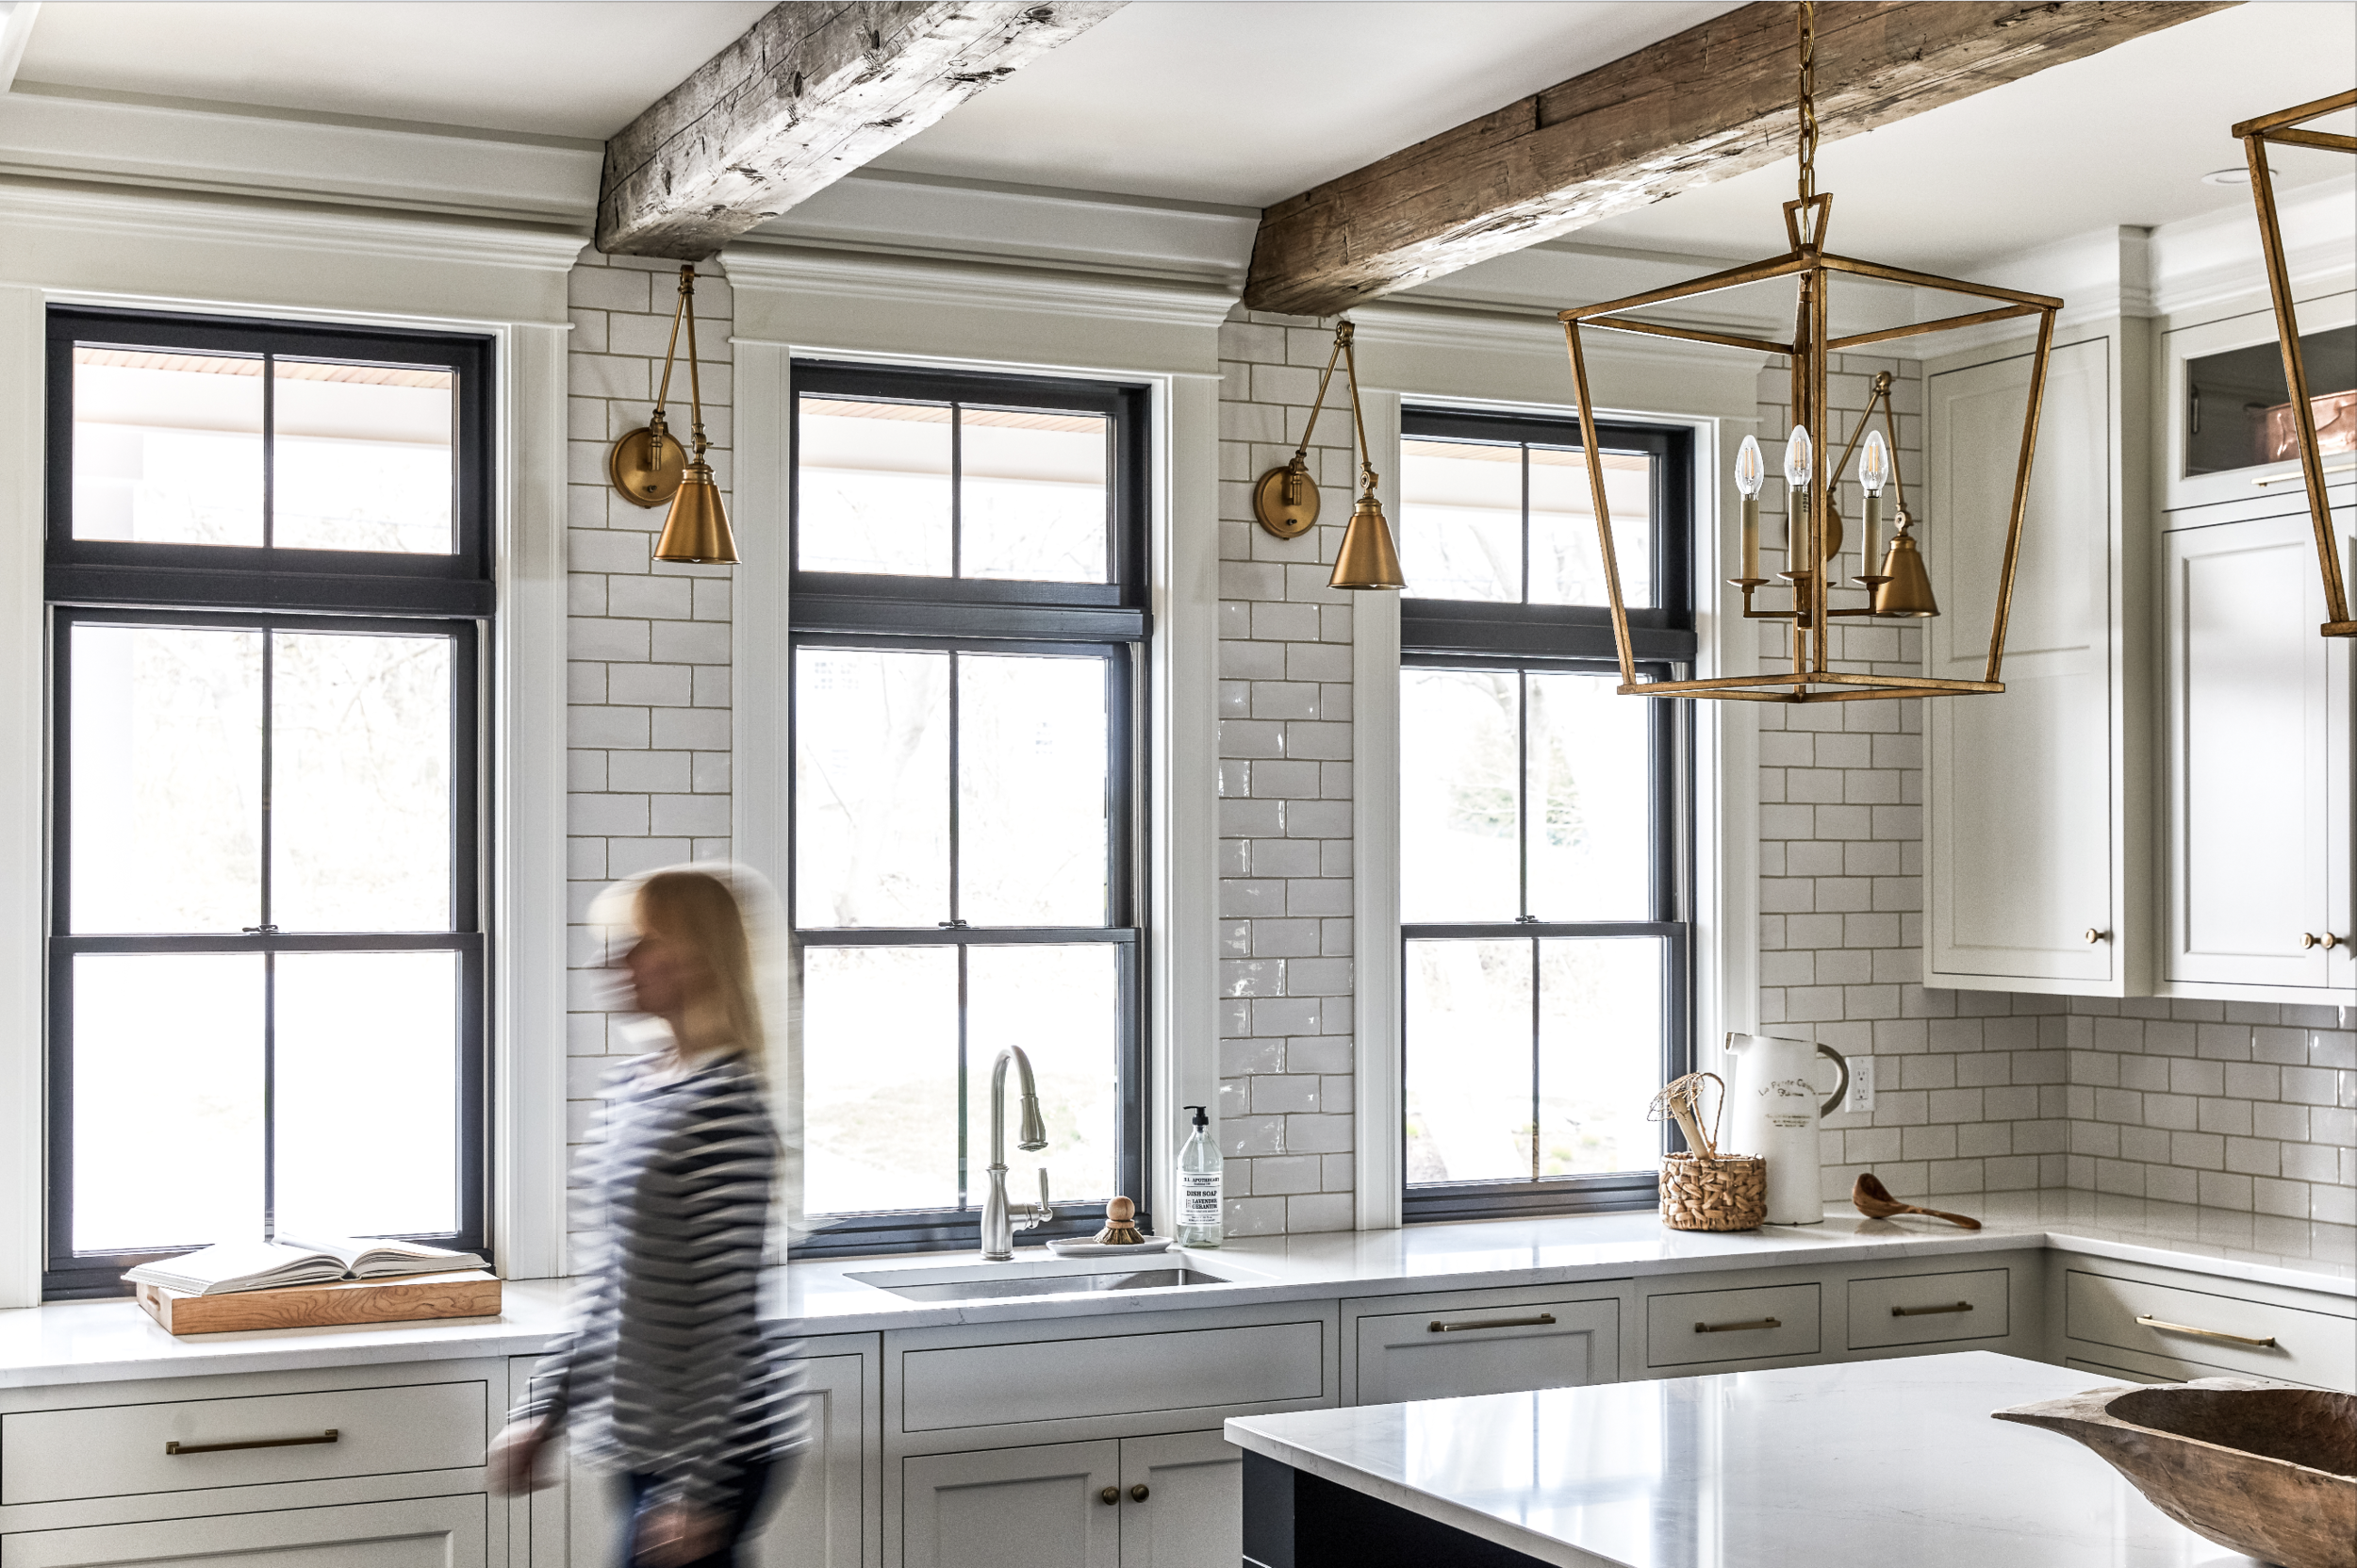 TRUNDY POINT - This newly built home's timeless feel reflects days gone by. Velvety painted cabinetry and polished calacatta quartz countertops are mixed with reclaimed barn beams, antiqued brass light fixtures and handmade tile to create layers of rich texture. Deceptively simple, the creamy white kitchen with striking blue island and separate butlers pantry, provide all the luxury and innovation of a well appointed custom home.